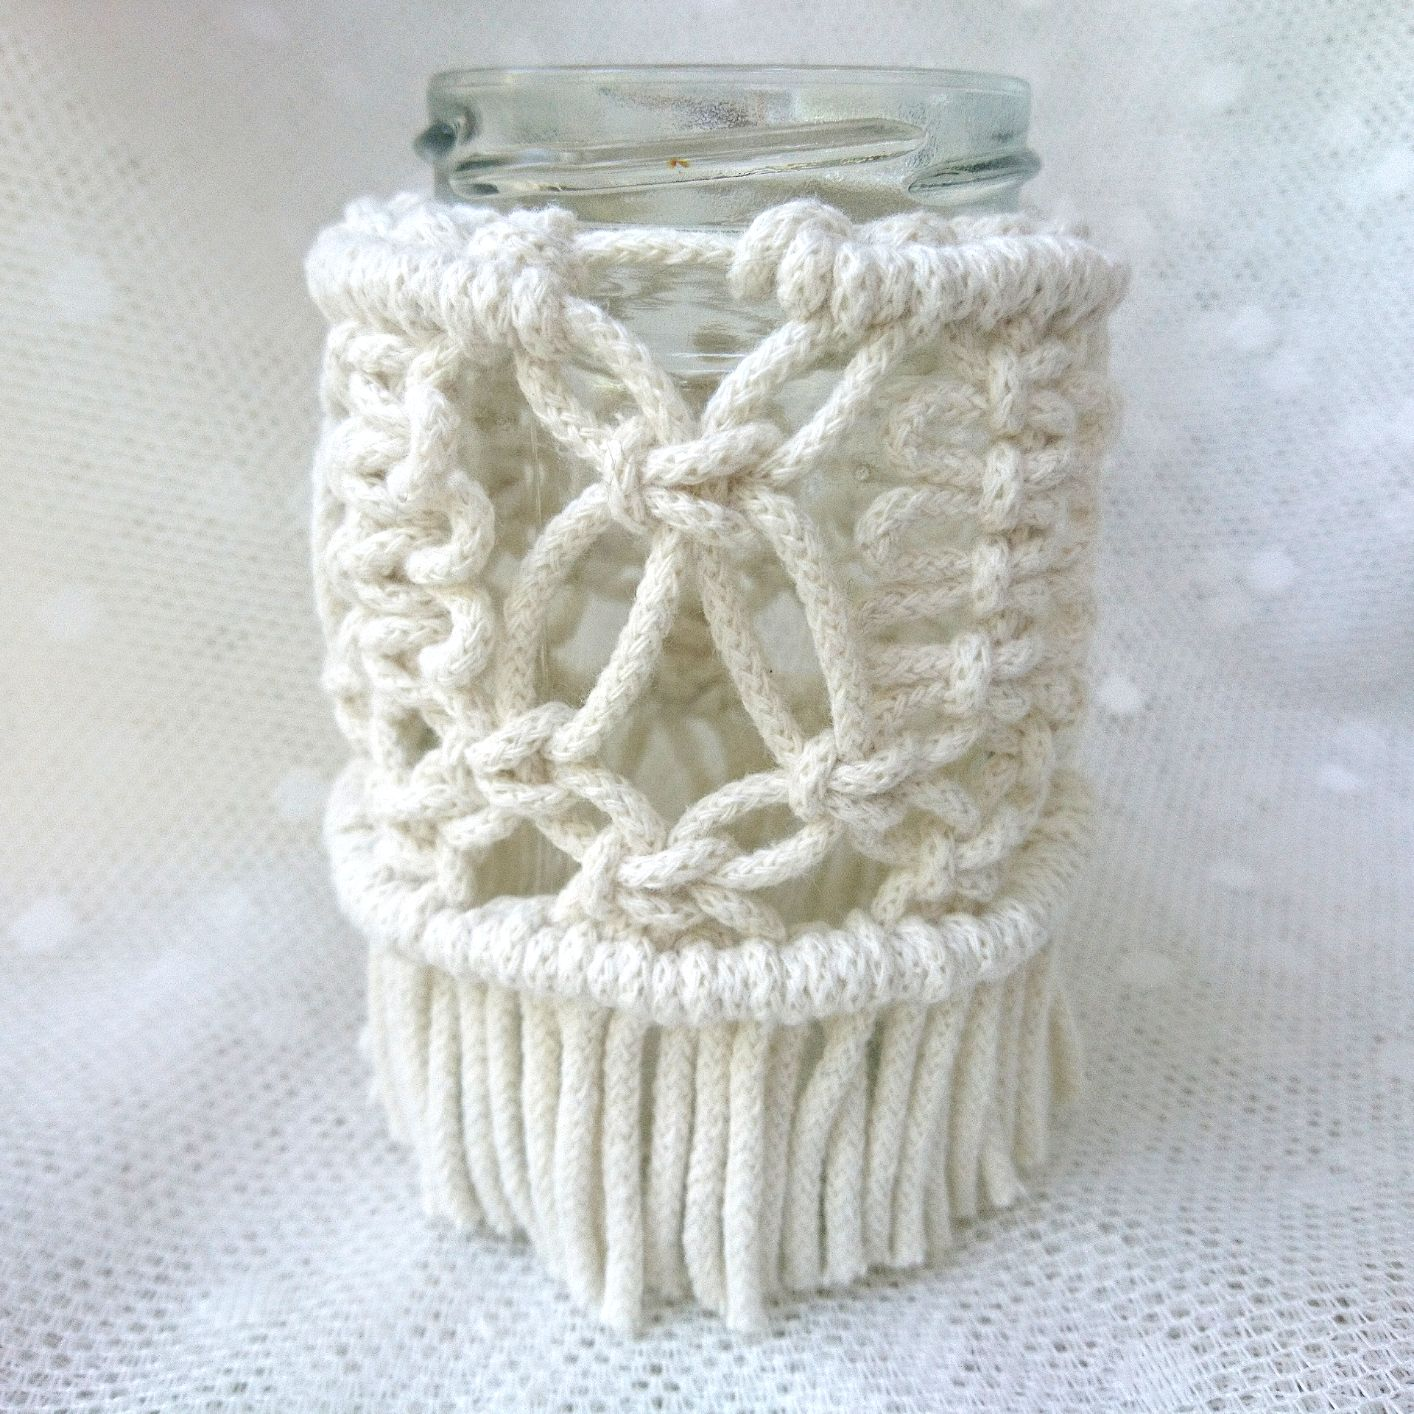 WONDERFLOWER JAR